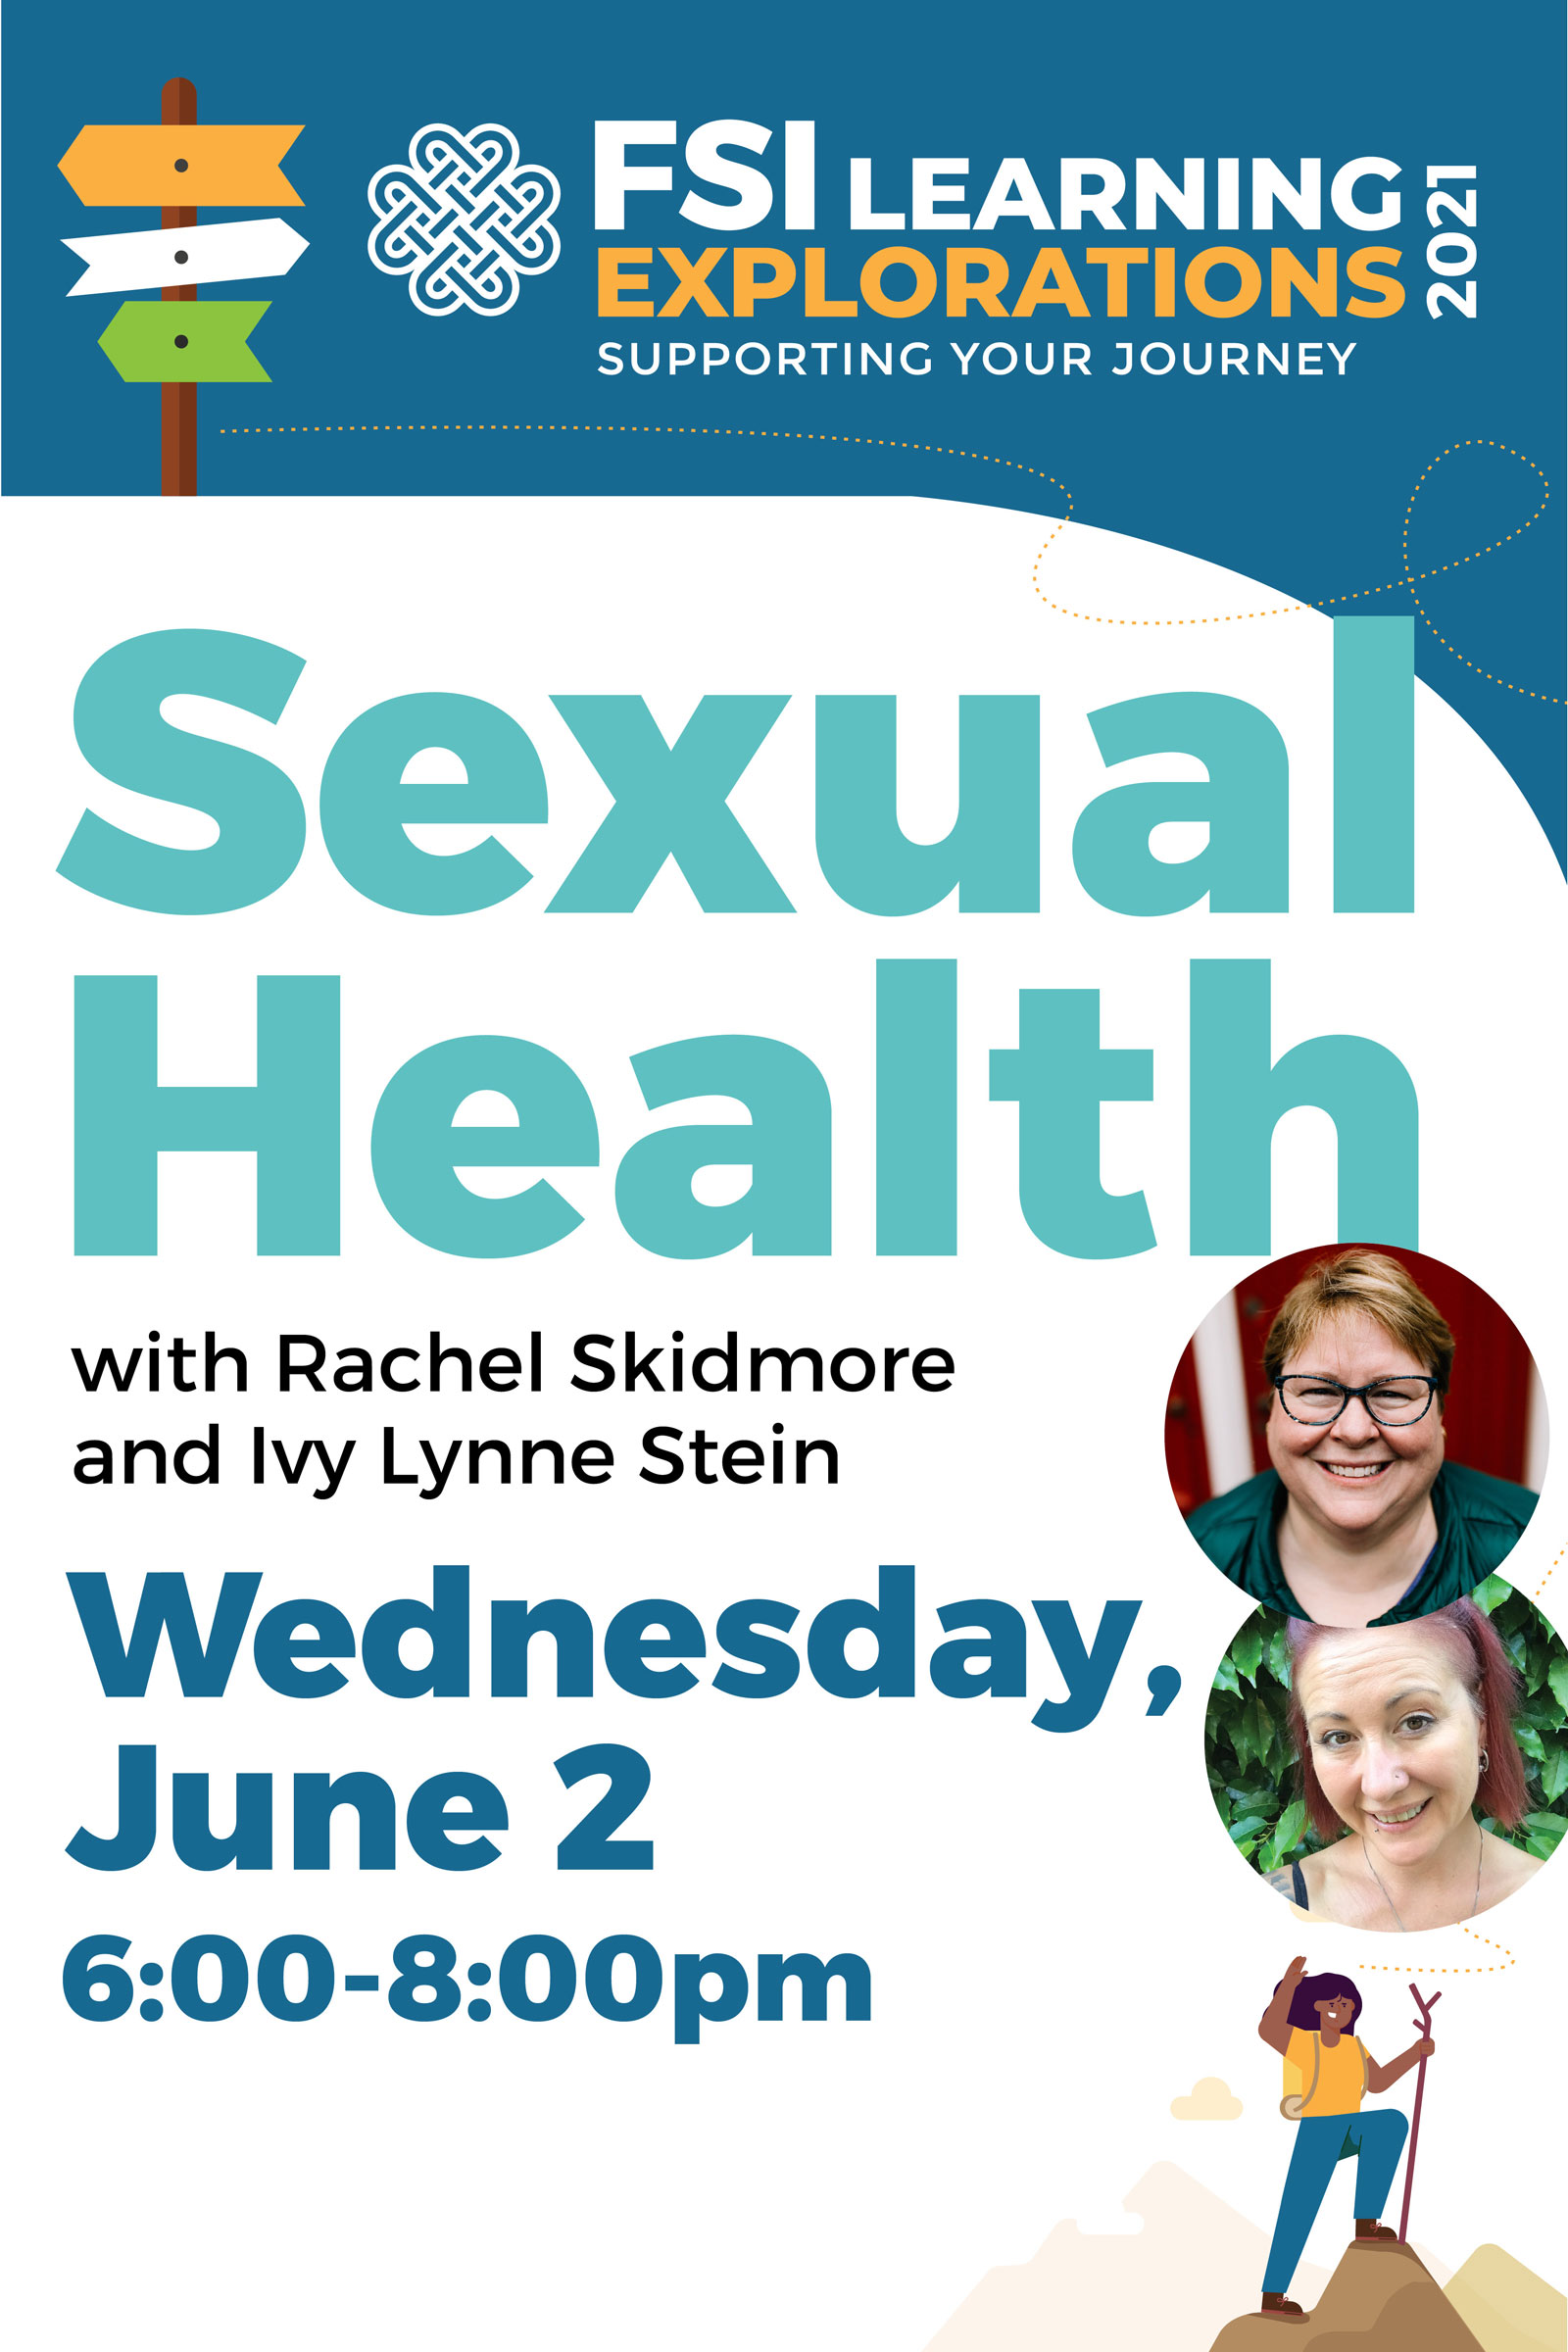 FSI Learning Explorations - Sexual Health